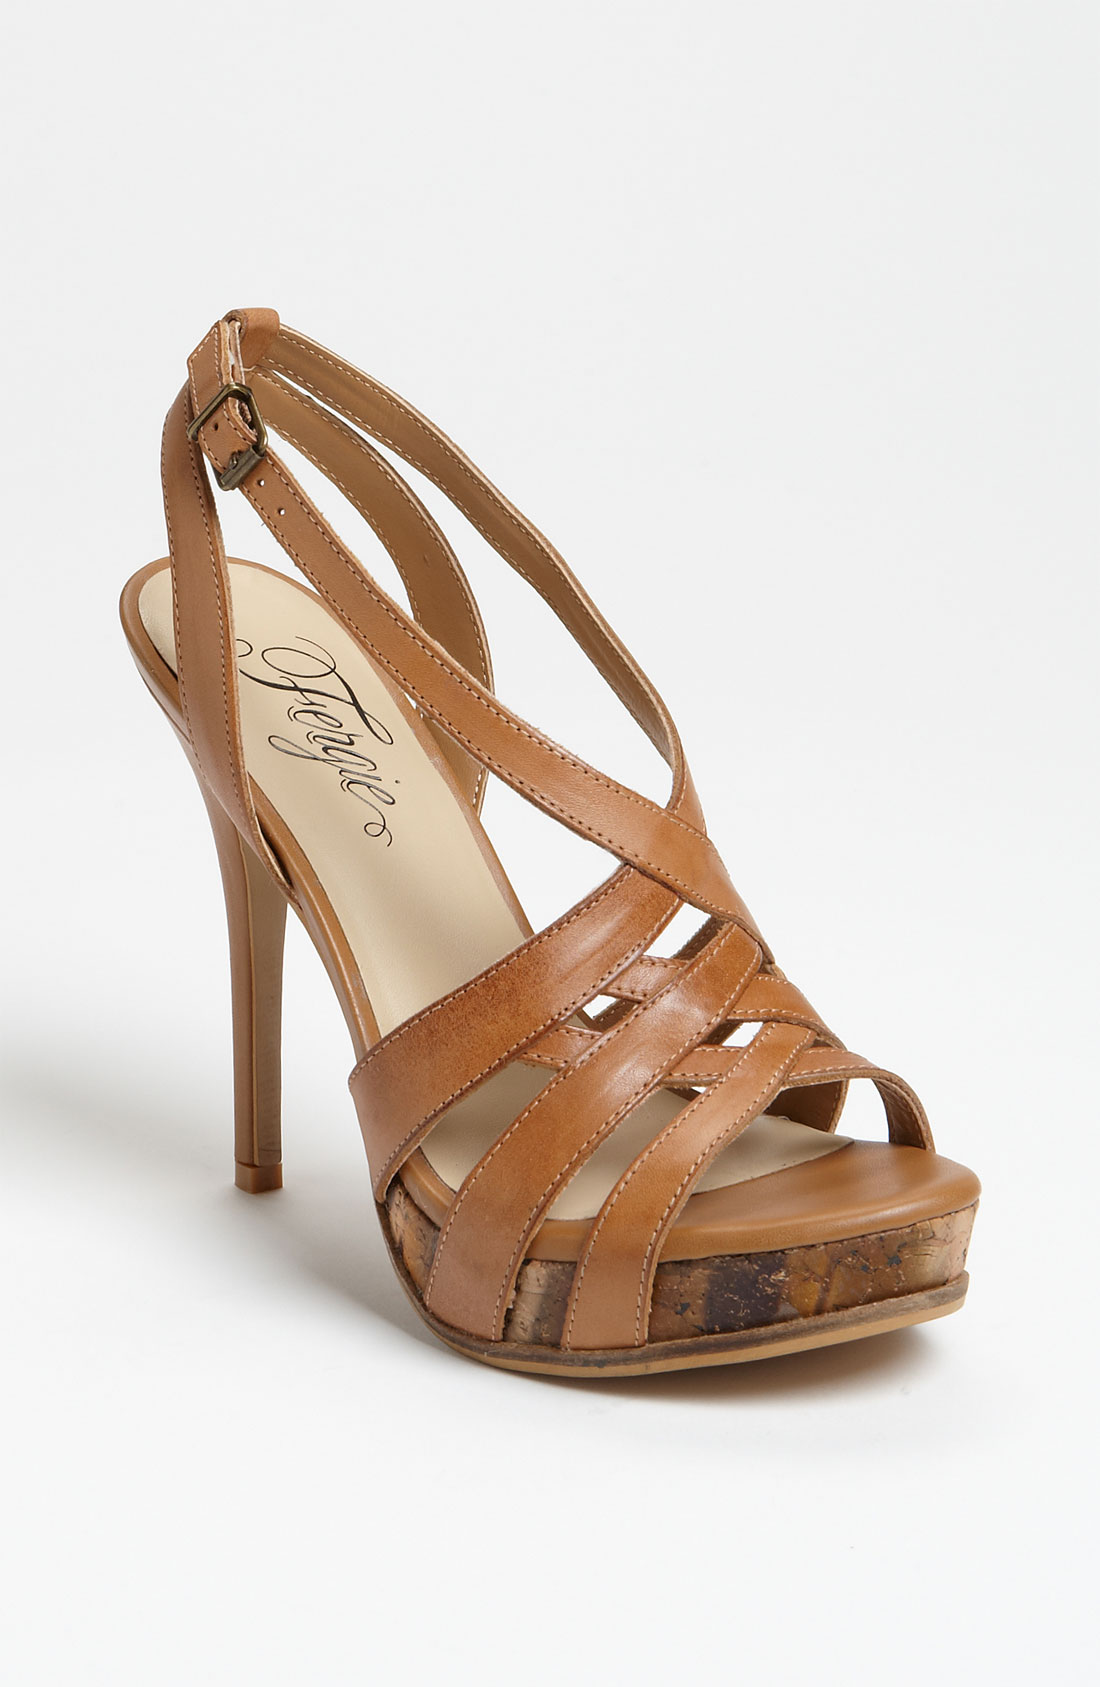 Lyst - Fergie Kissed Sandal in Brown Fergie Shoes